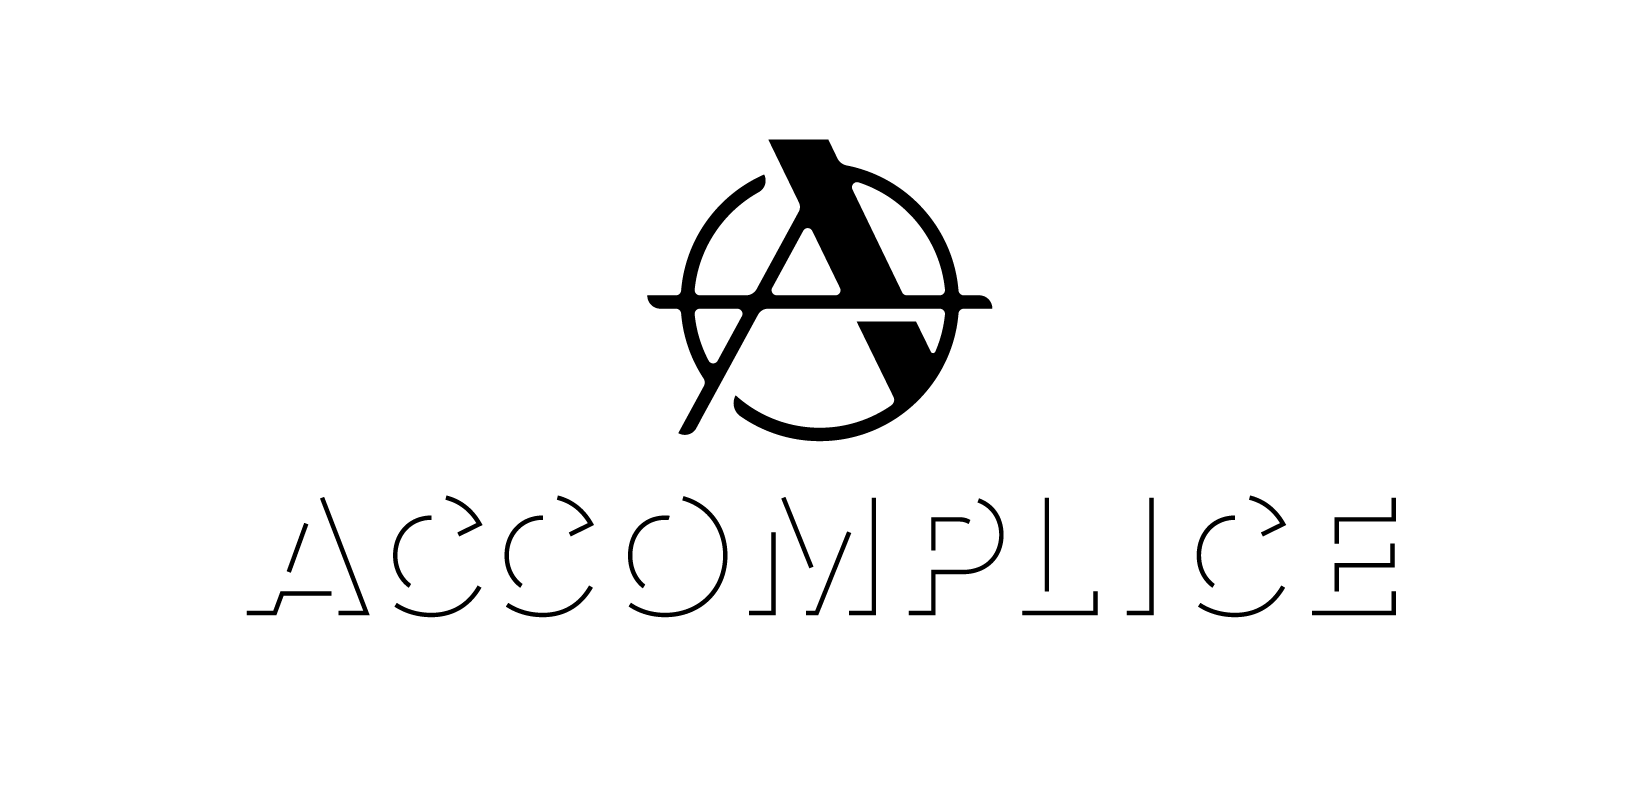 Accomplice stacked marks black with white background png.png